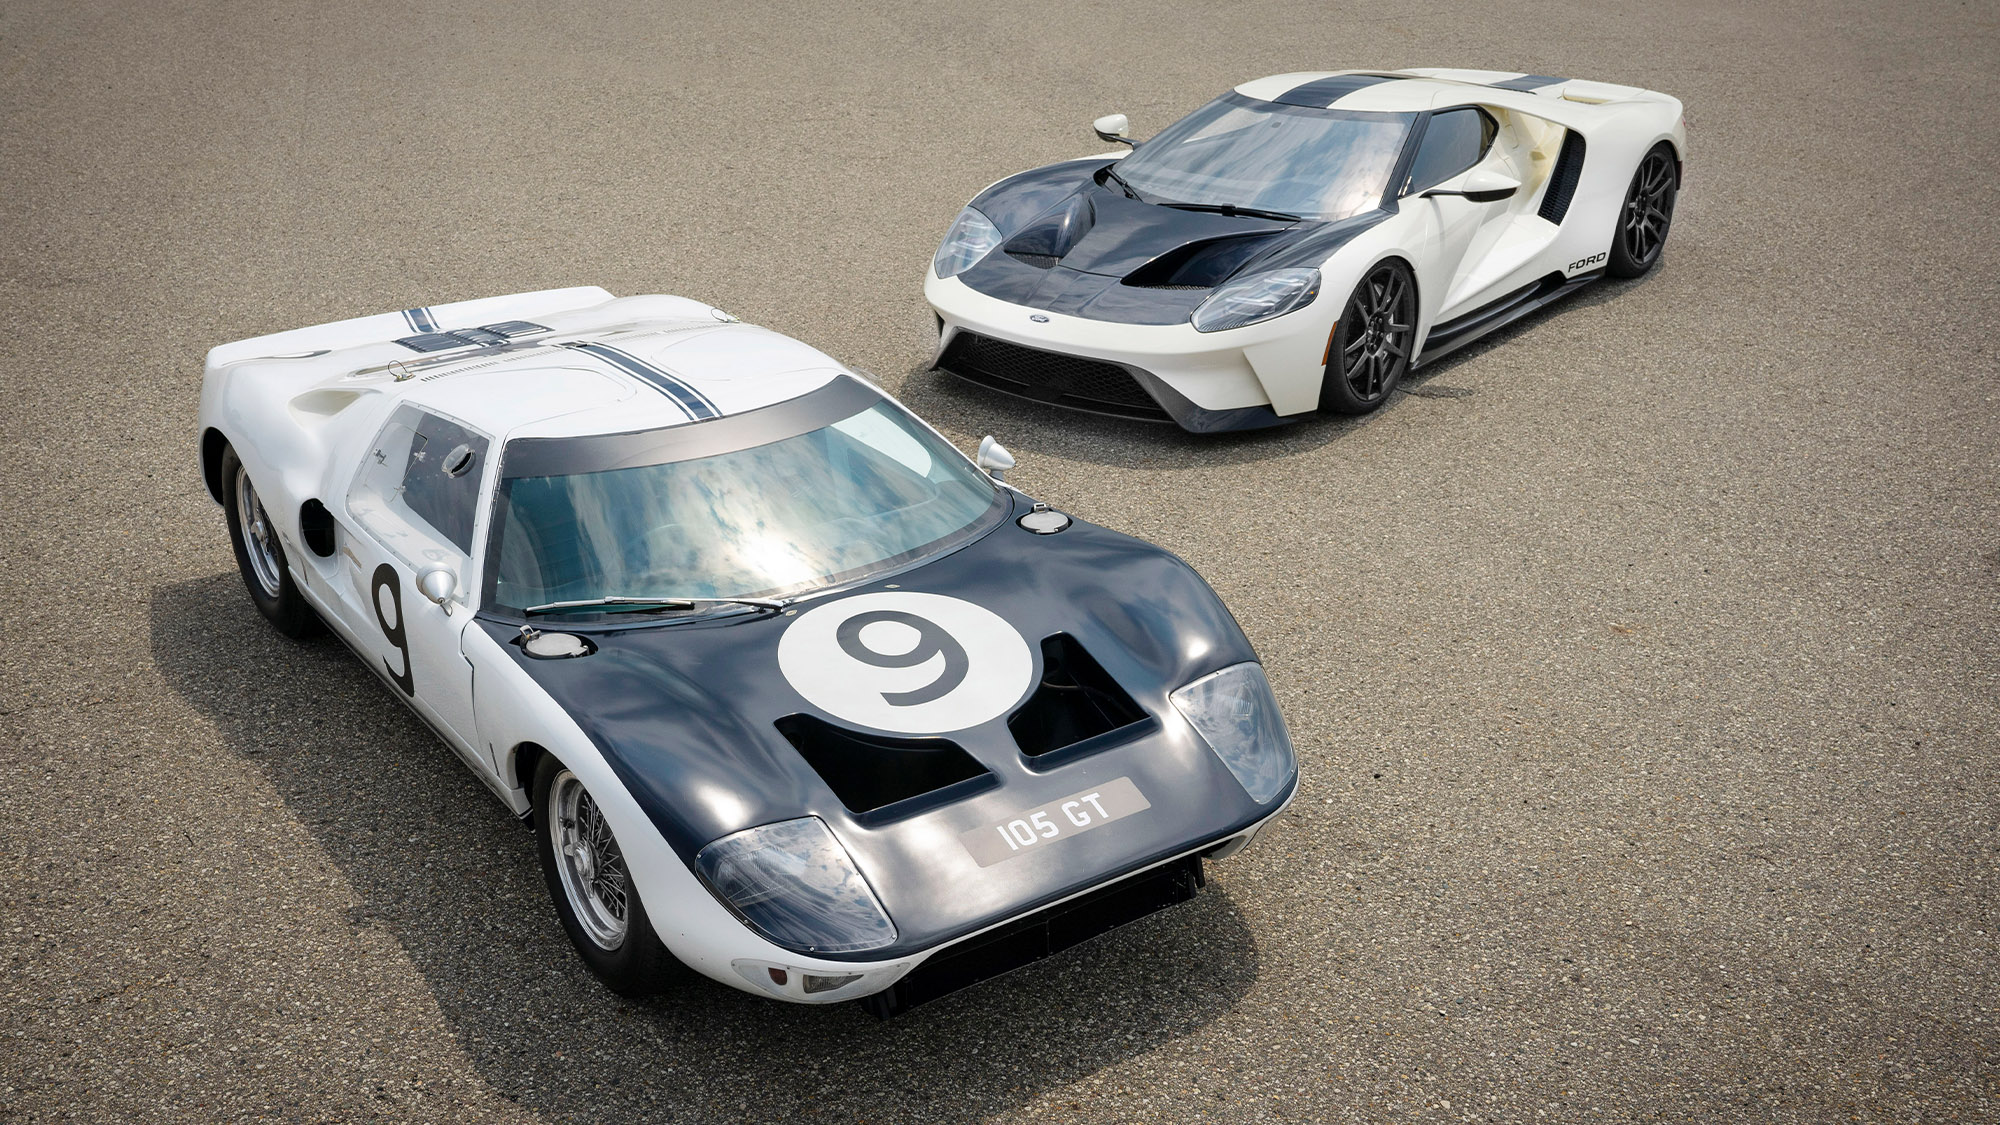 Ford GT heritage with 1964 Ford GT Prototype